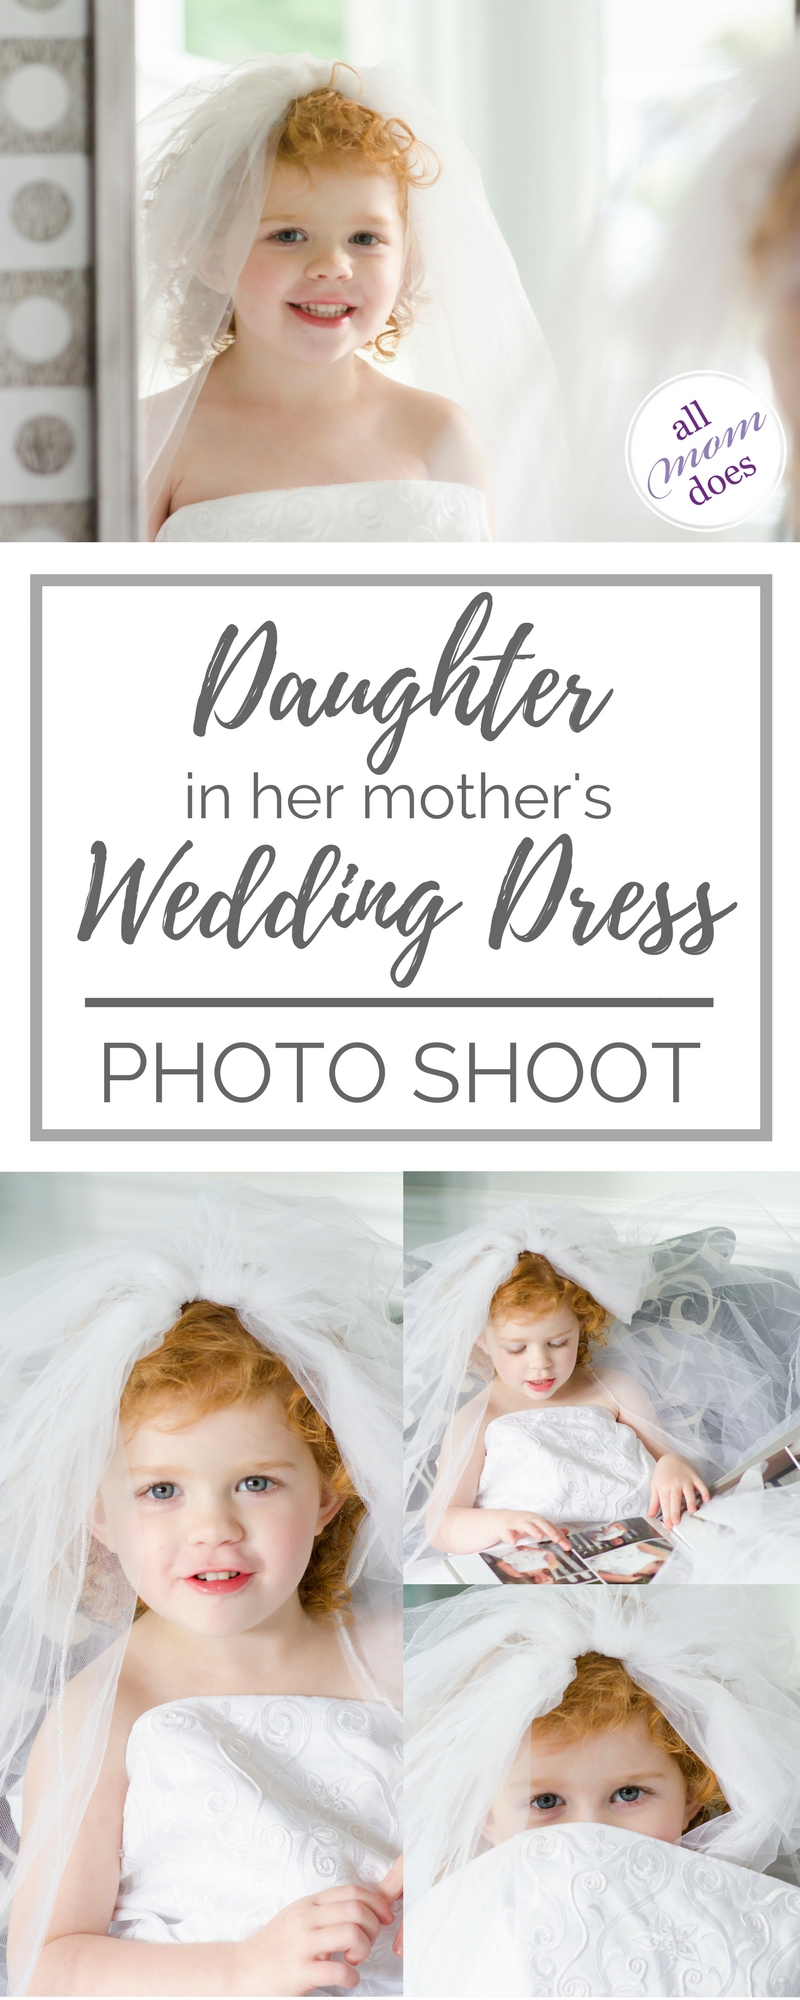 Little girl in her mother's wedding dress - do a wedding dress photo shoot with your daughter! So sweet! #weddingdress #mamasgirl #daughter